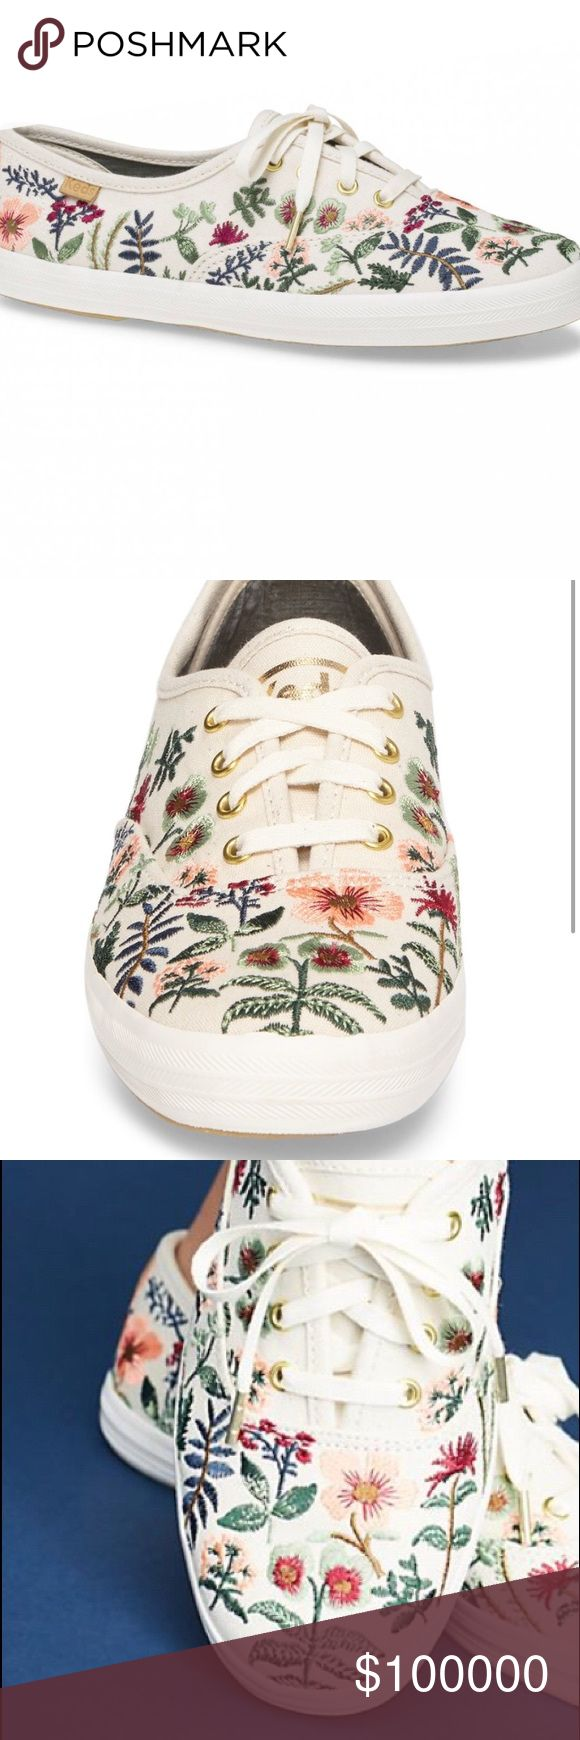 ISO x Rifle Paper Co. Herb Garden Keds Looking for Keds x Rifle Paper Co. Herb Garden Embroidered Sneakers. Either in a size 7 or 6 1/2. Keds Shoes Sneakers